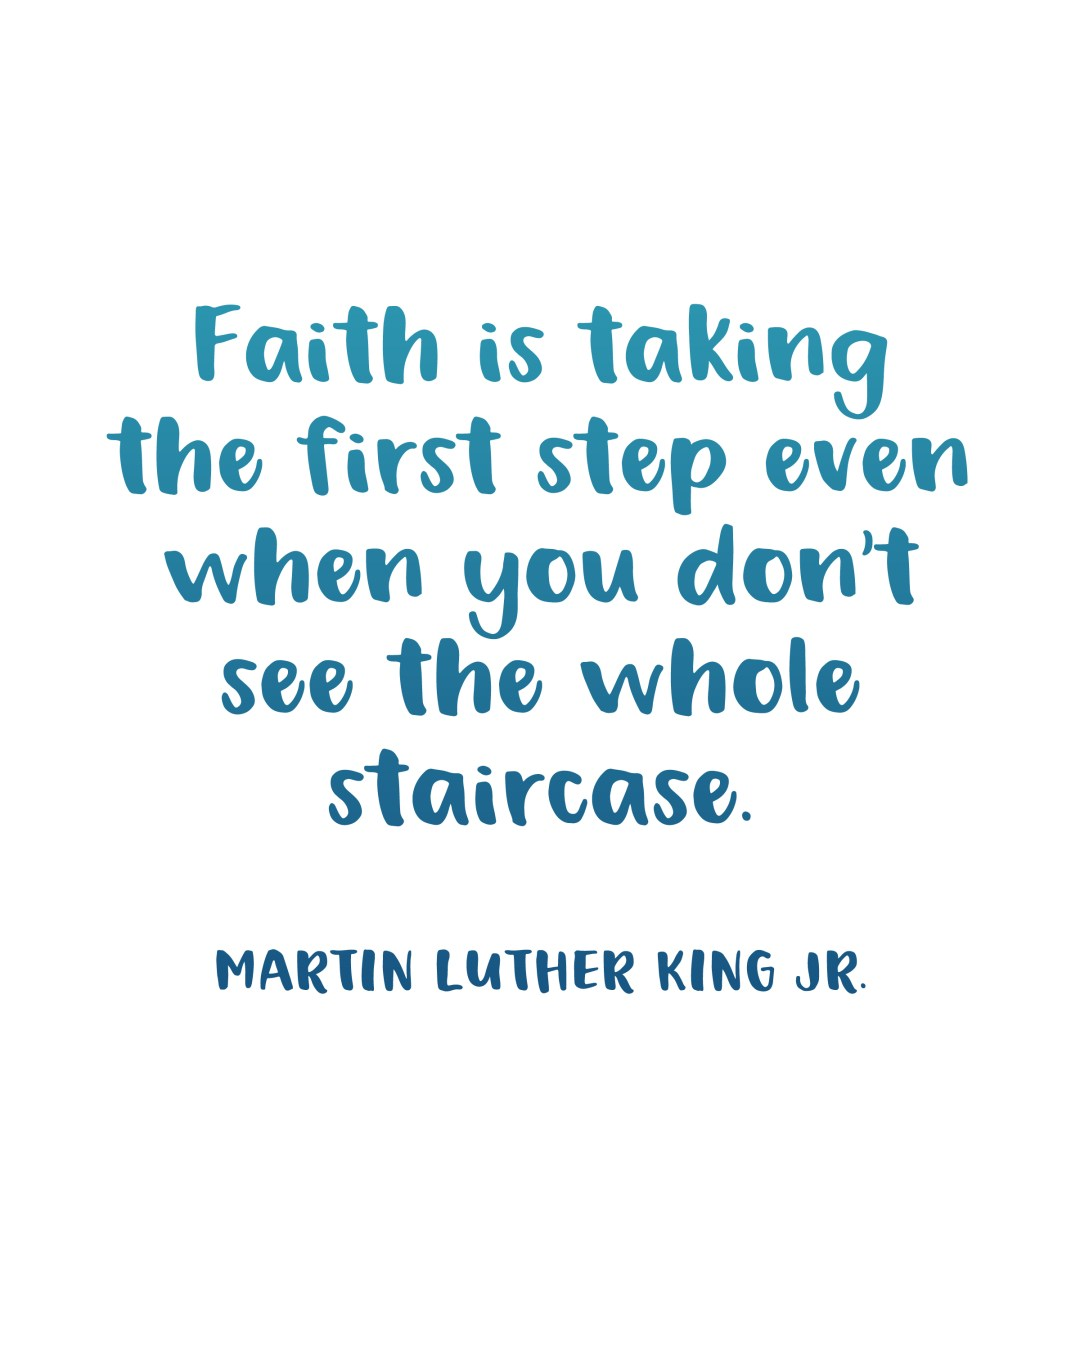 My King Quotes Printable Inspiration Staircase Quotemartin Luther King Jr